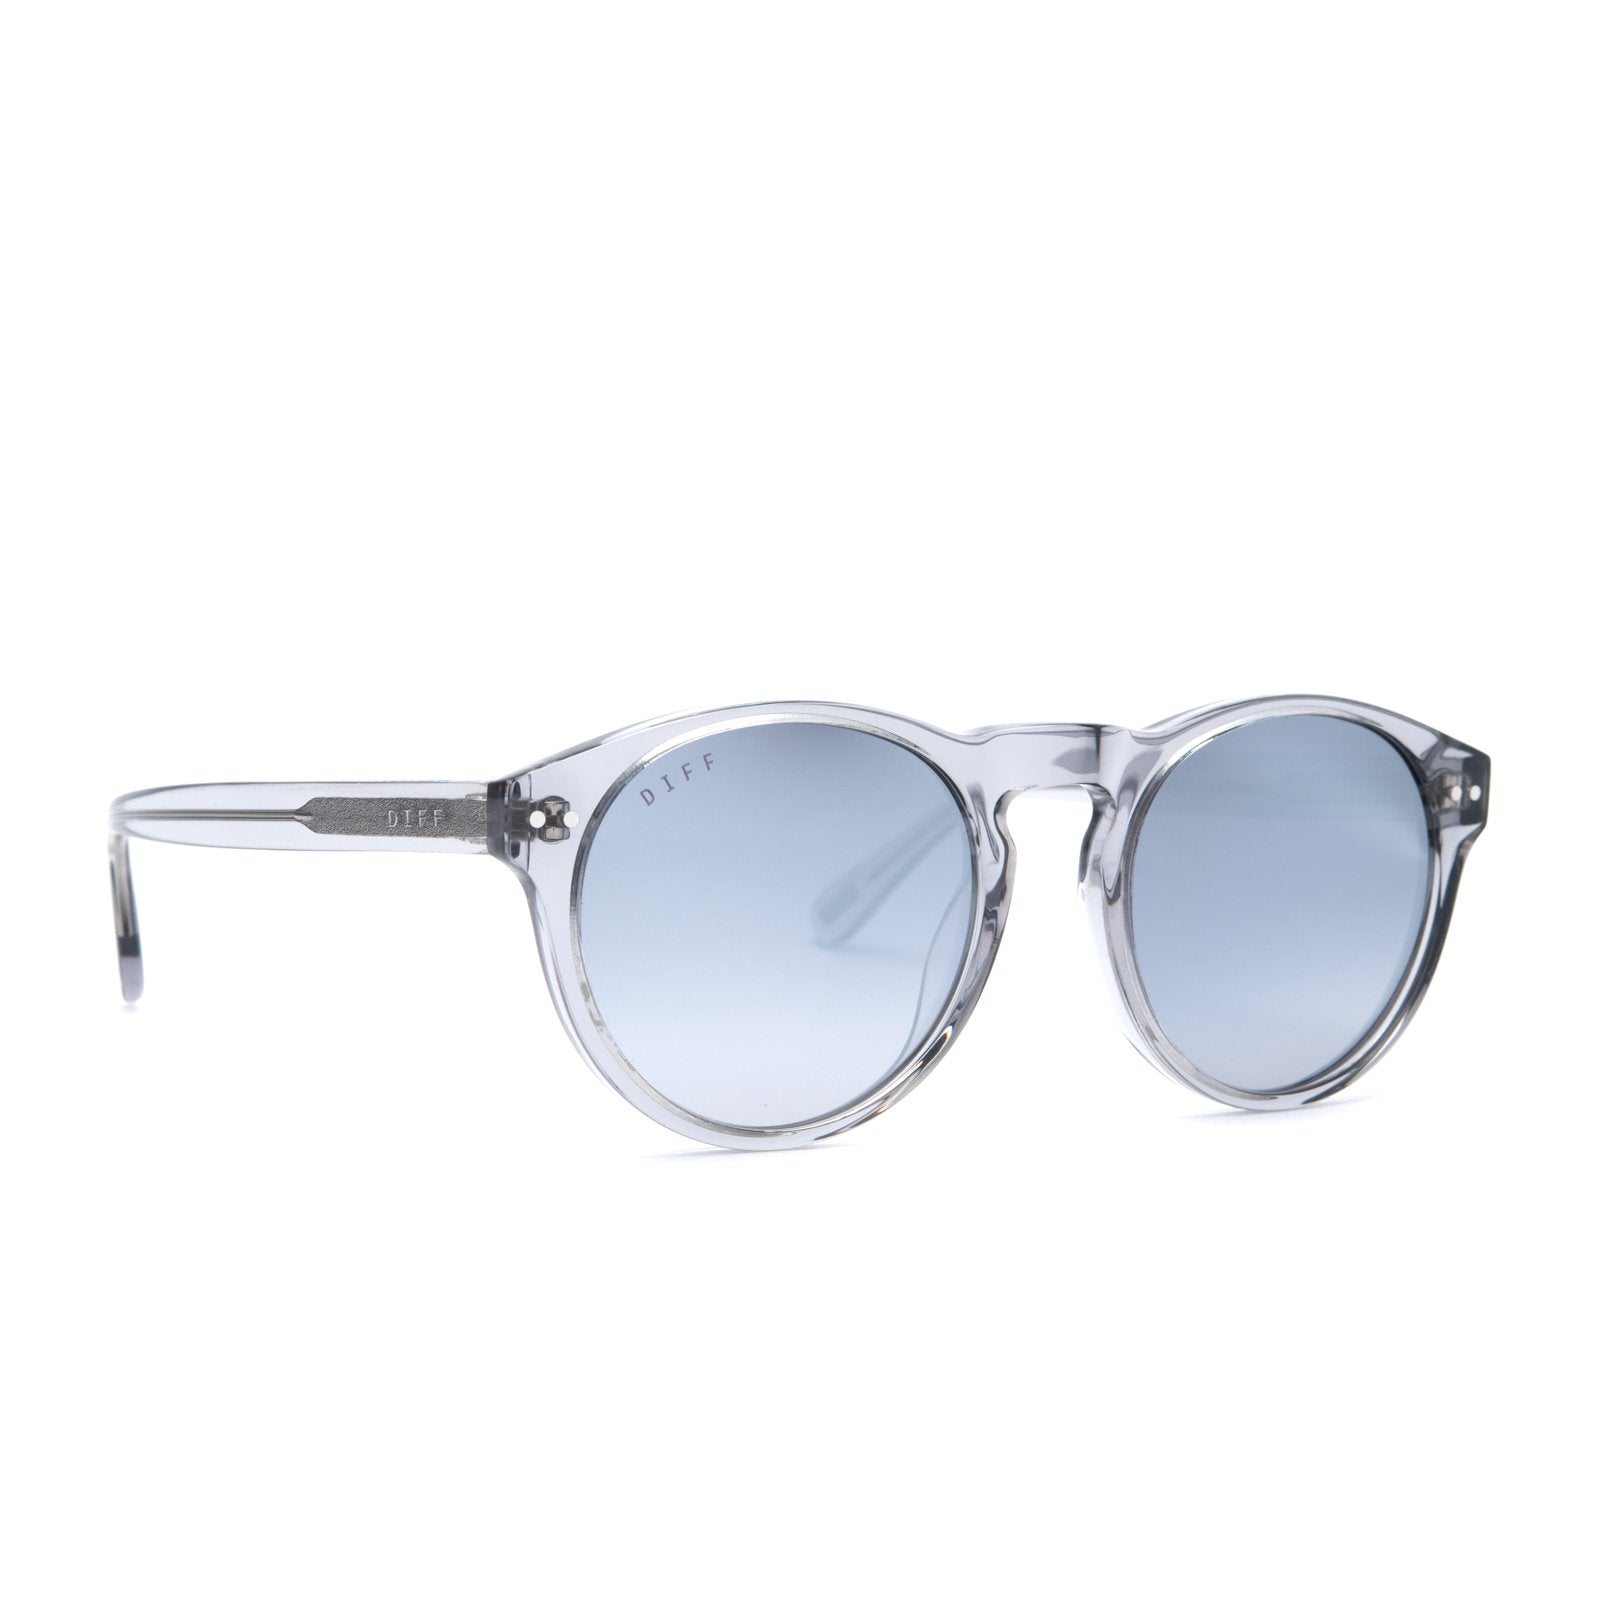 Cody sunglasses with smoke crystal frames and grey mirror lens angle view